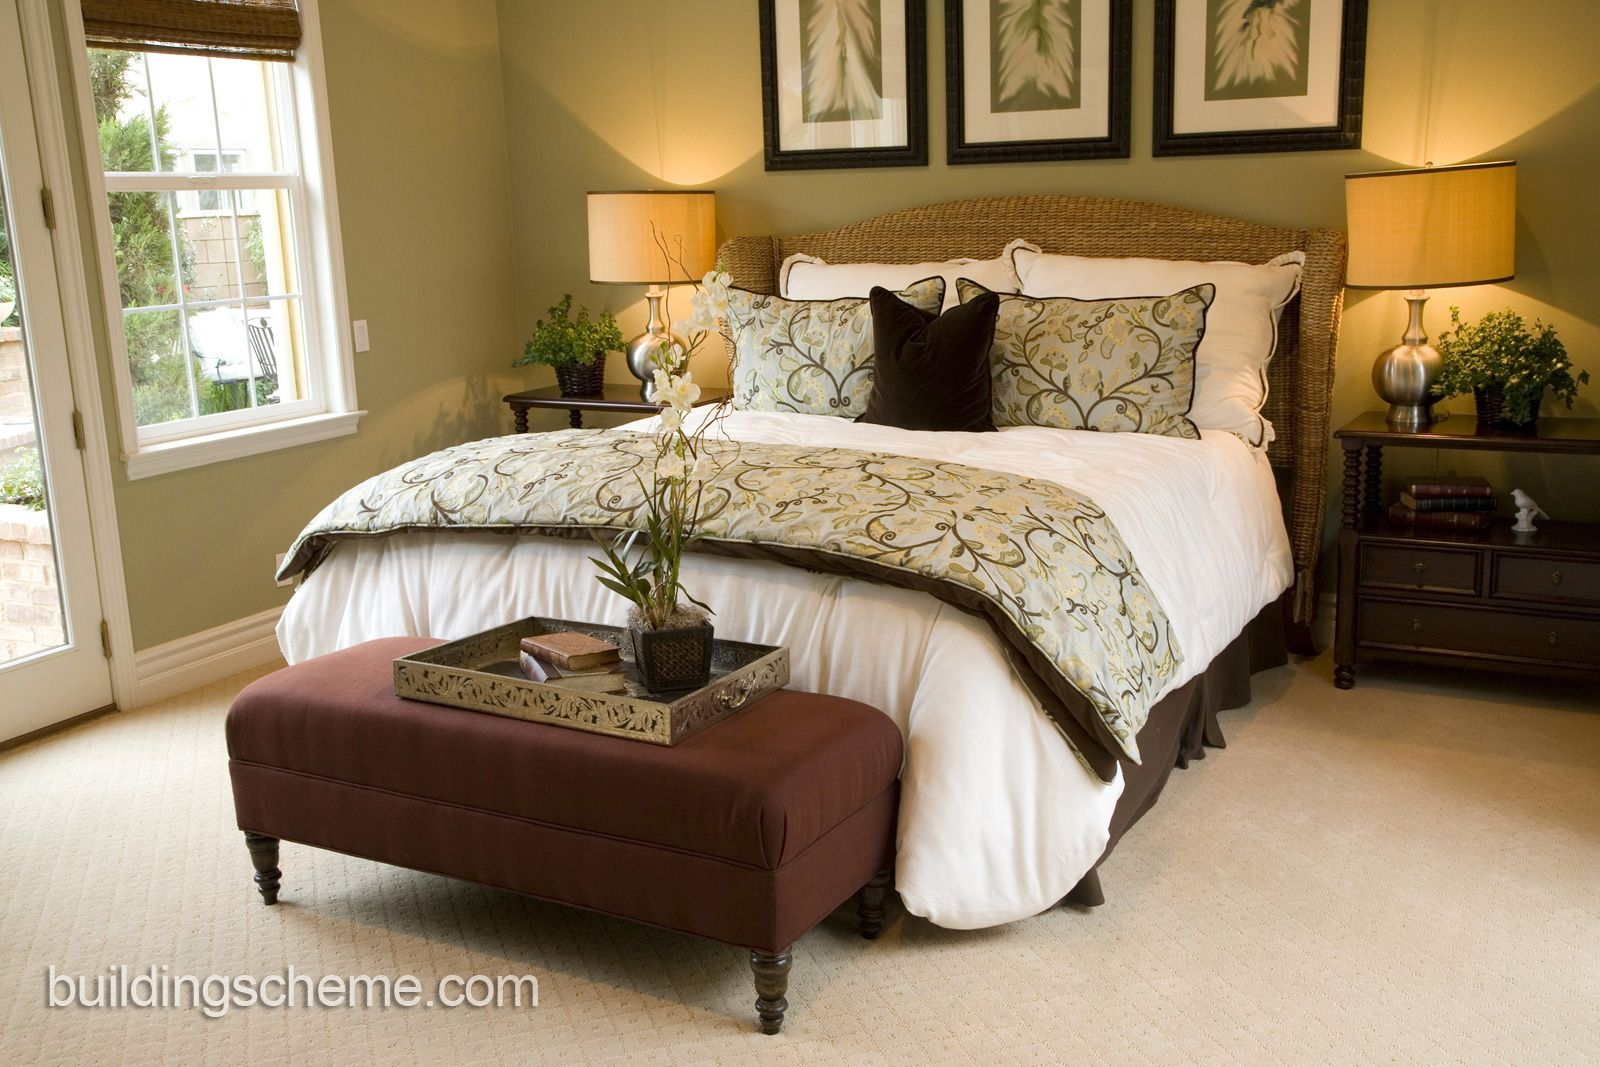 Classy Bedroom Idea With Wicker Bed And Leaves Pattern Decoration Exclusive Ideas For Couple